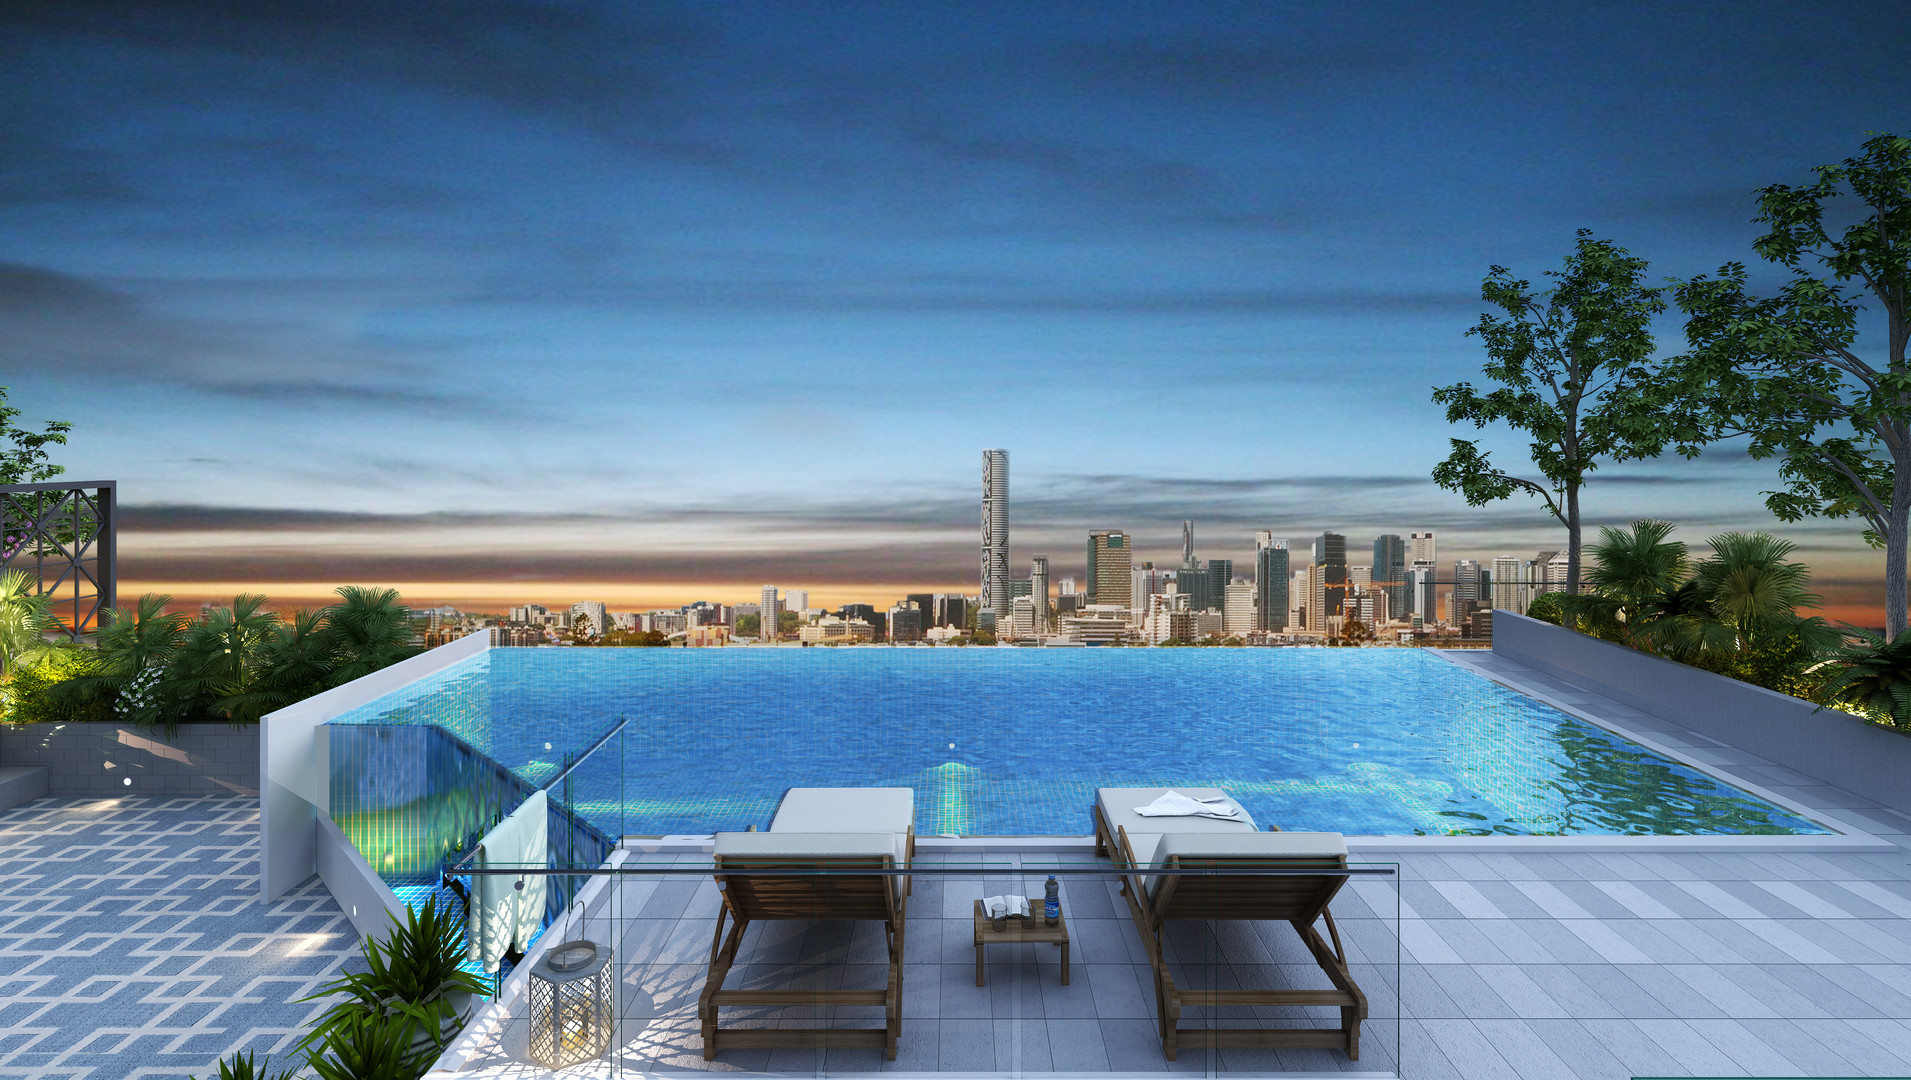 115 Project-Soko Westend 4 renders_POOL_